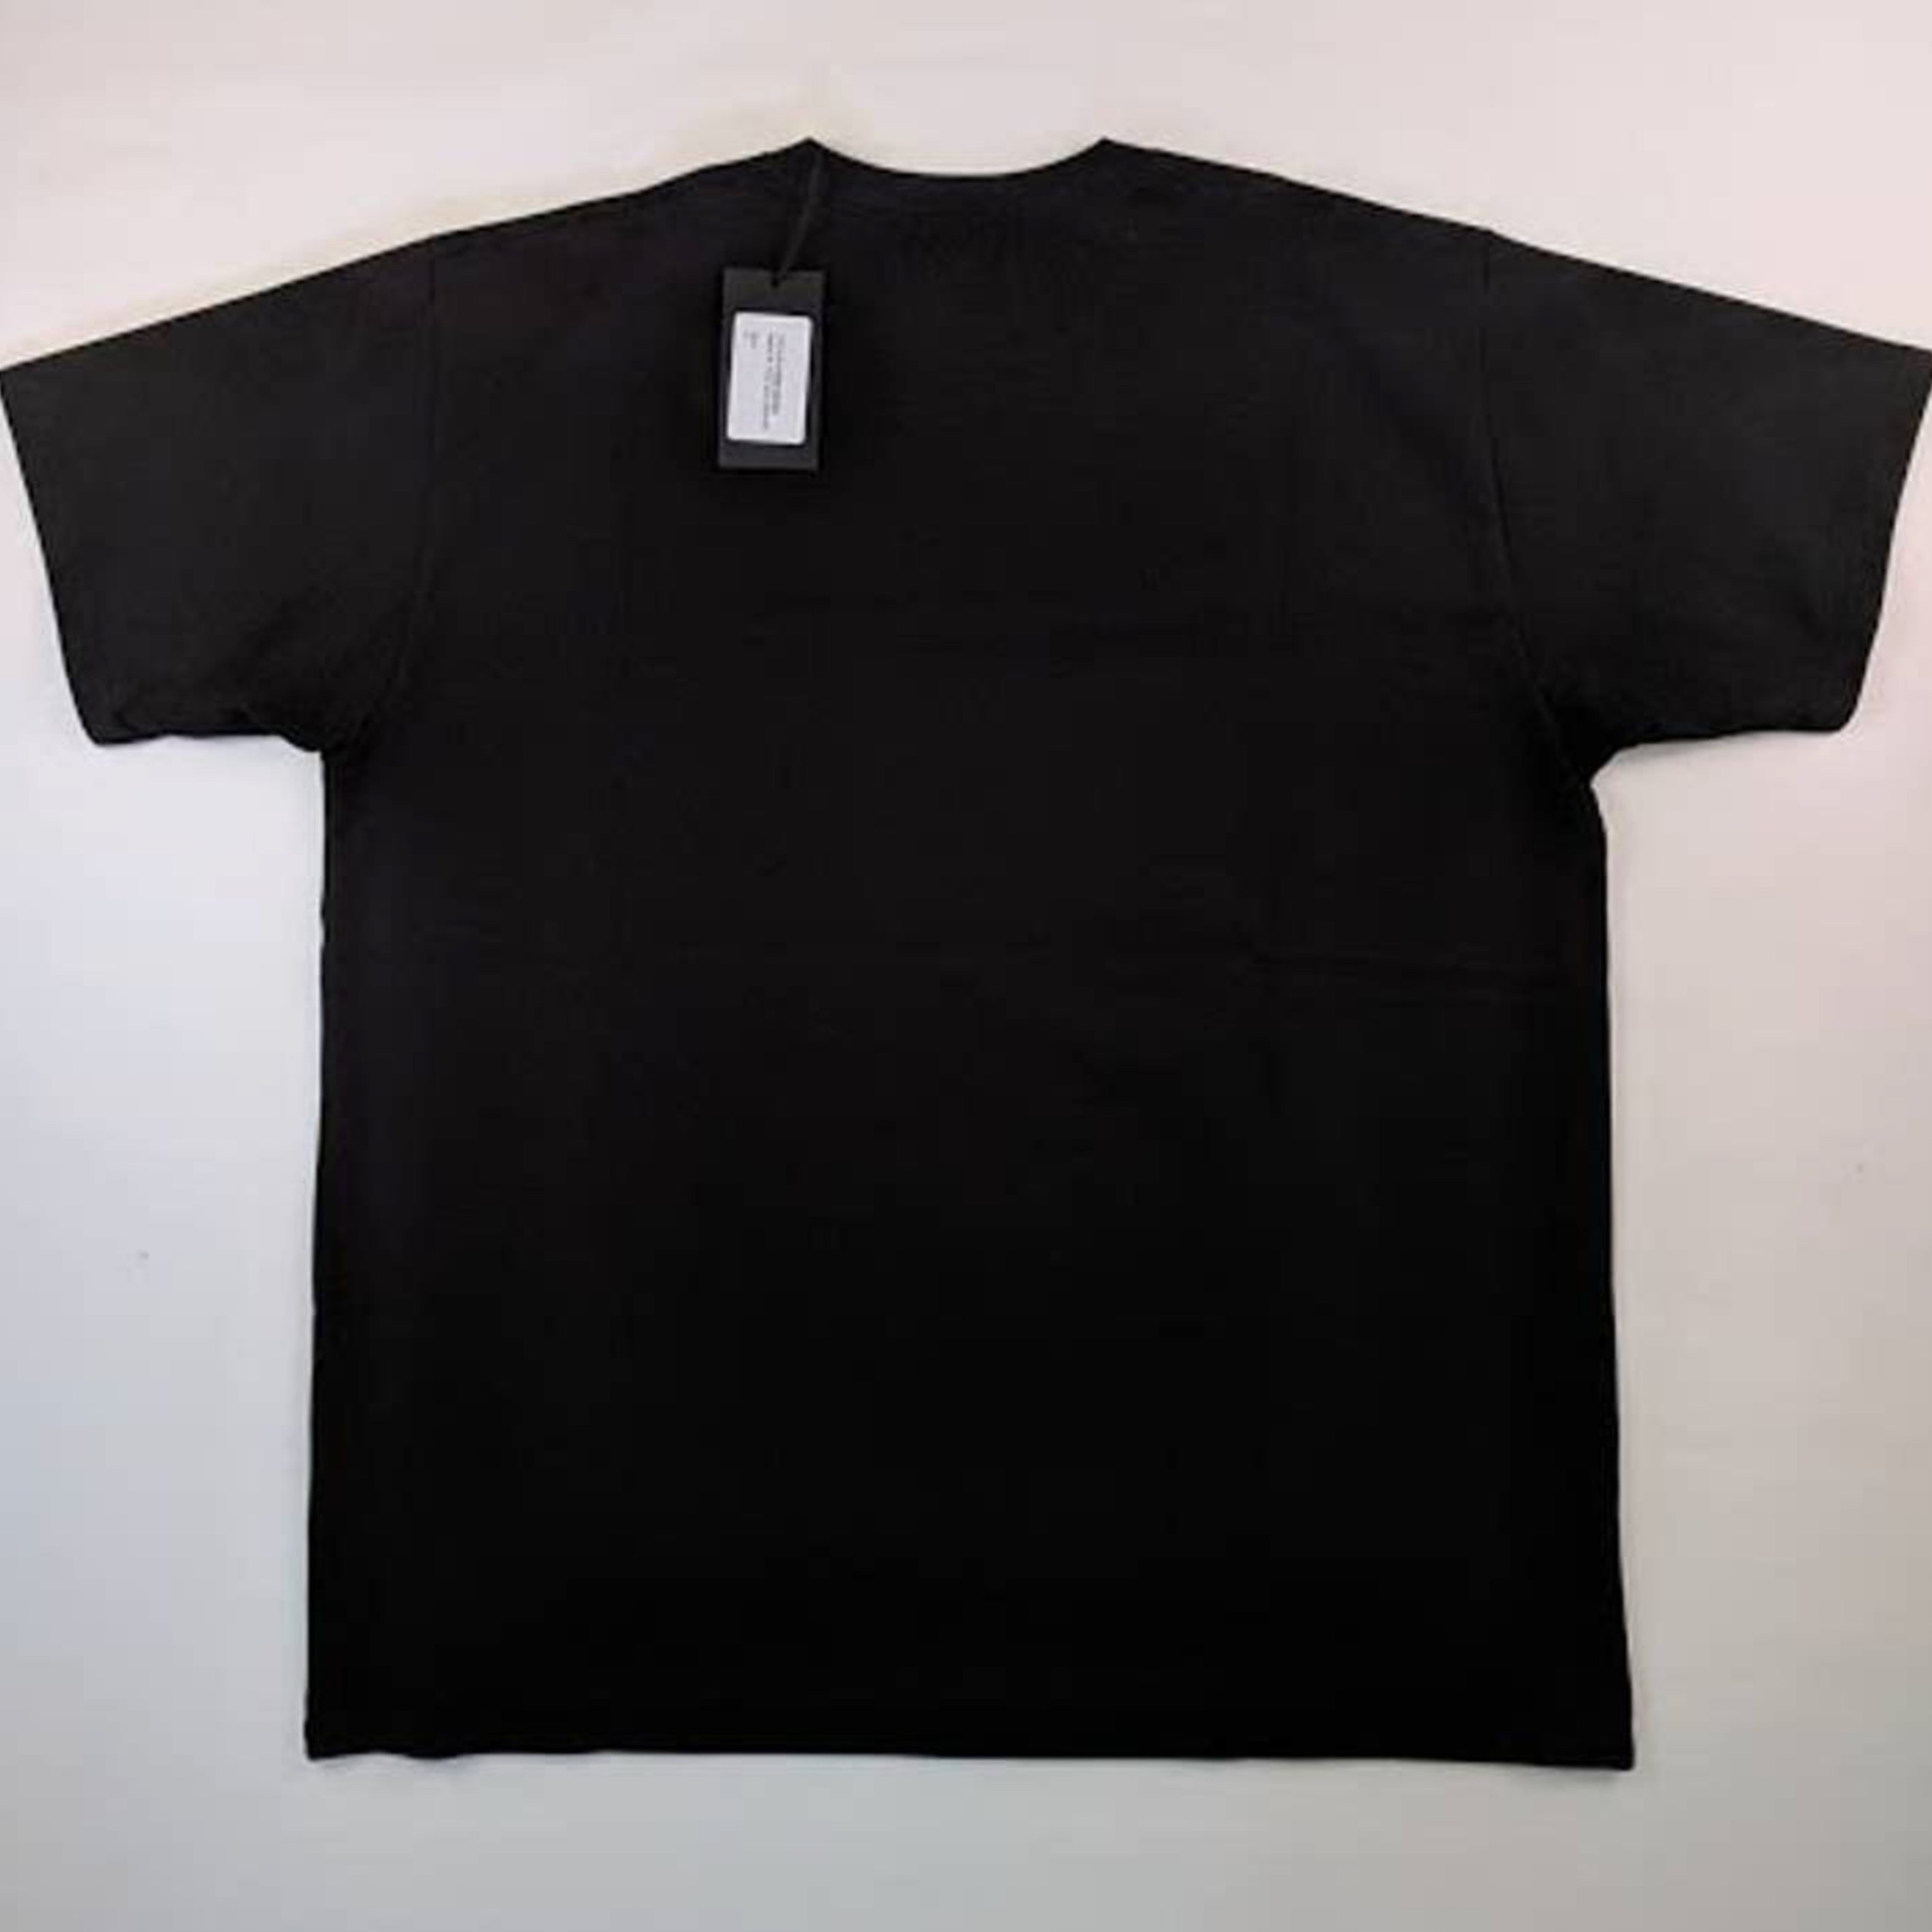 Raf Simons More Horrors T Shirt Black